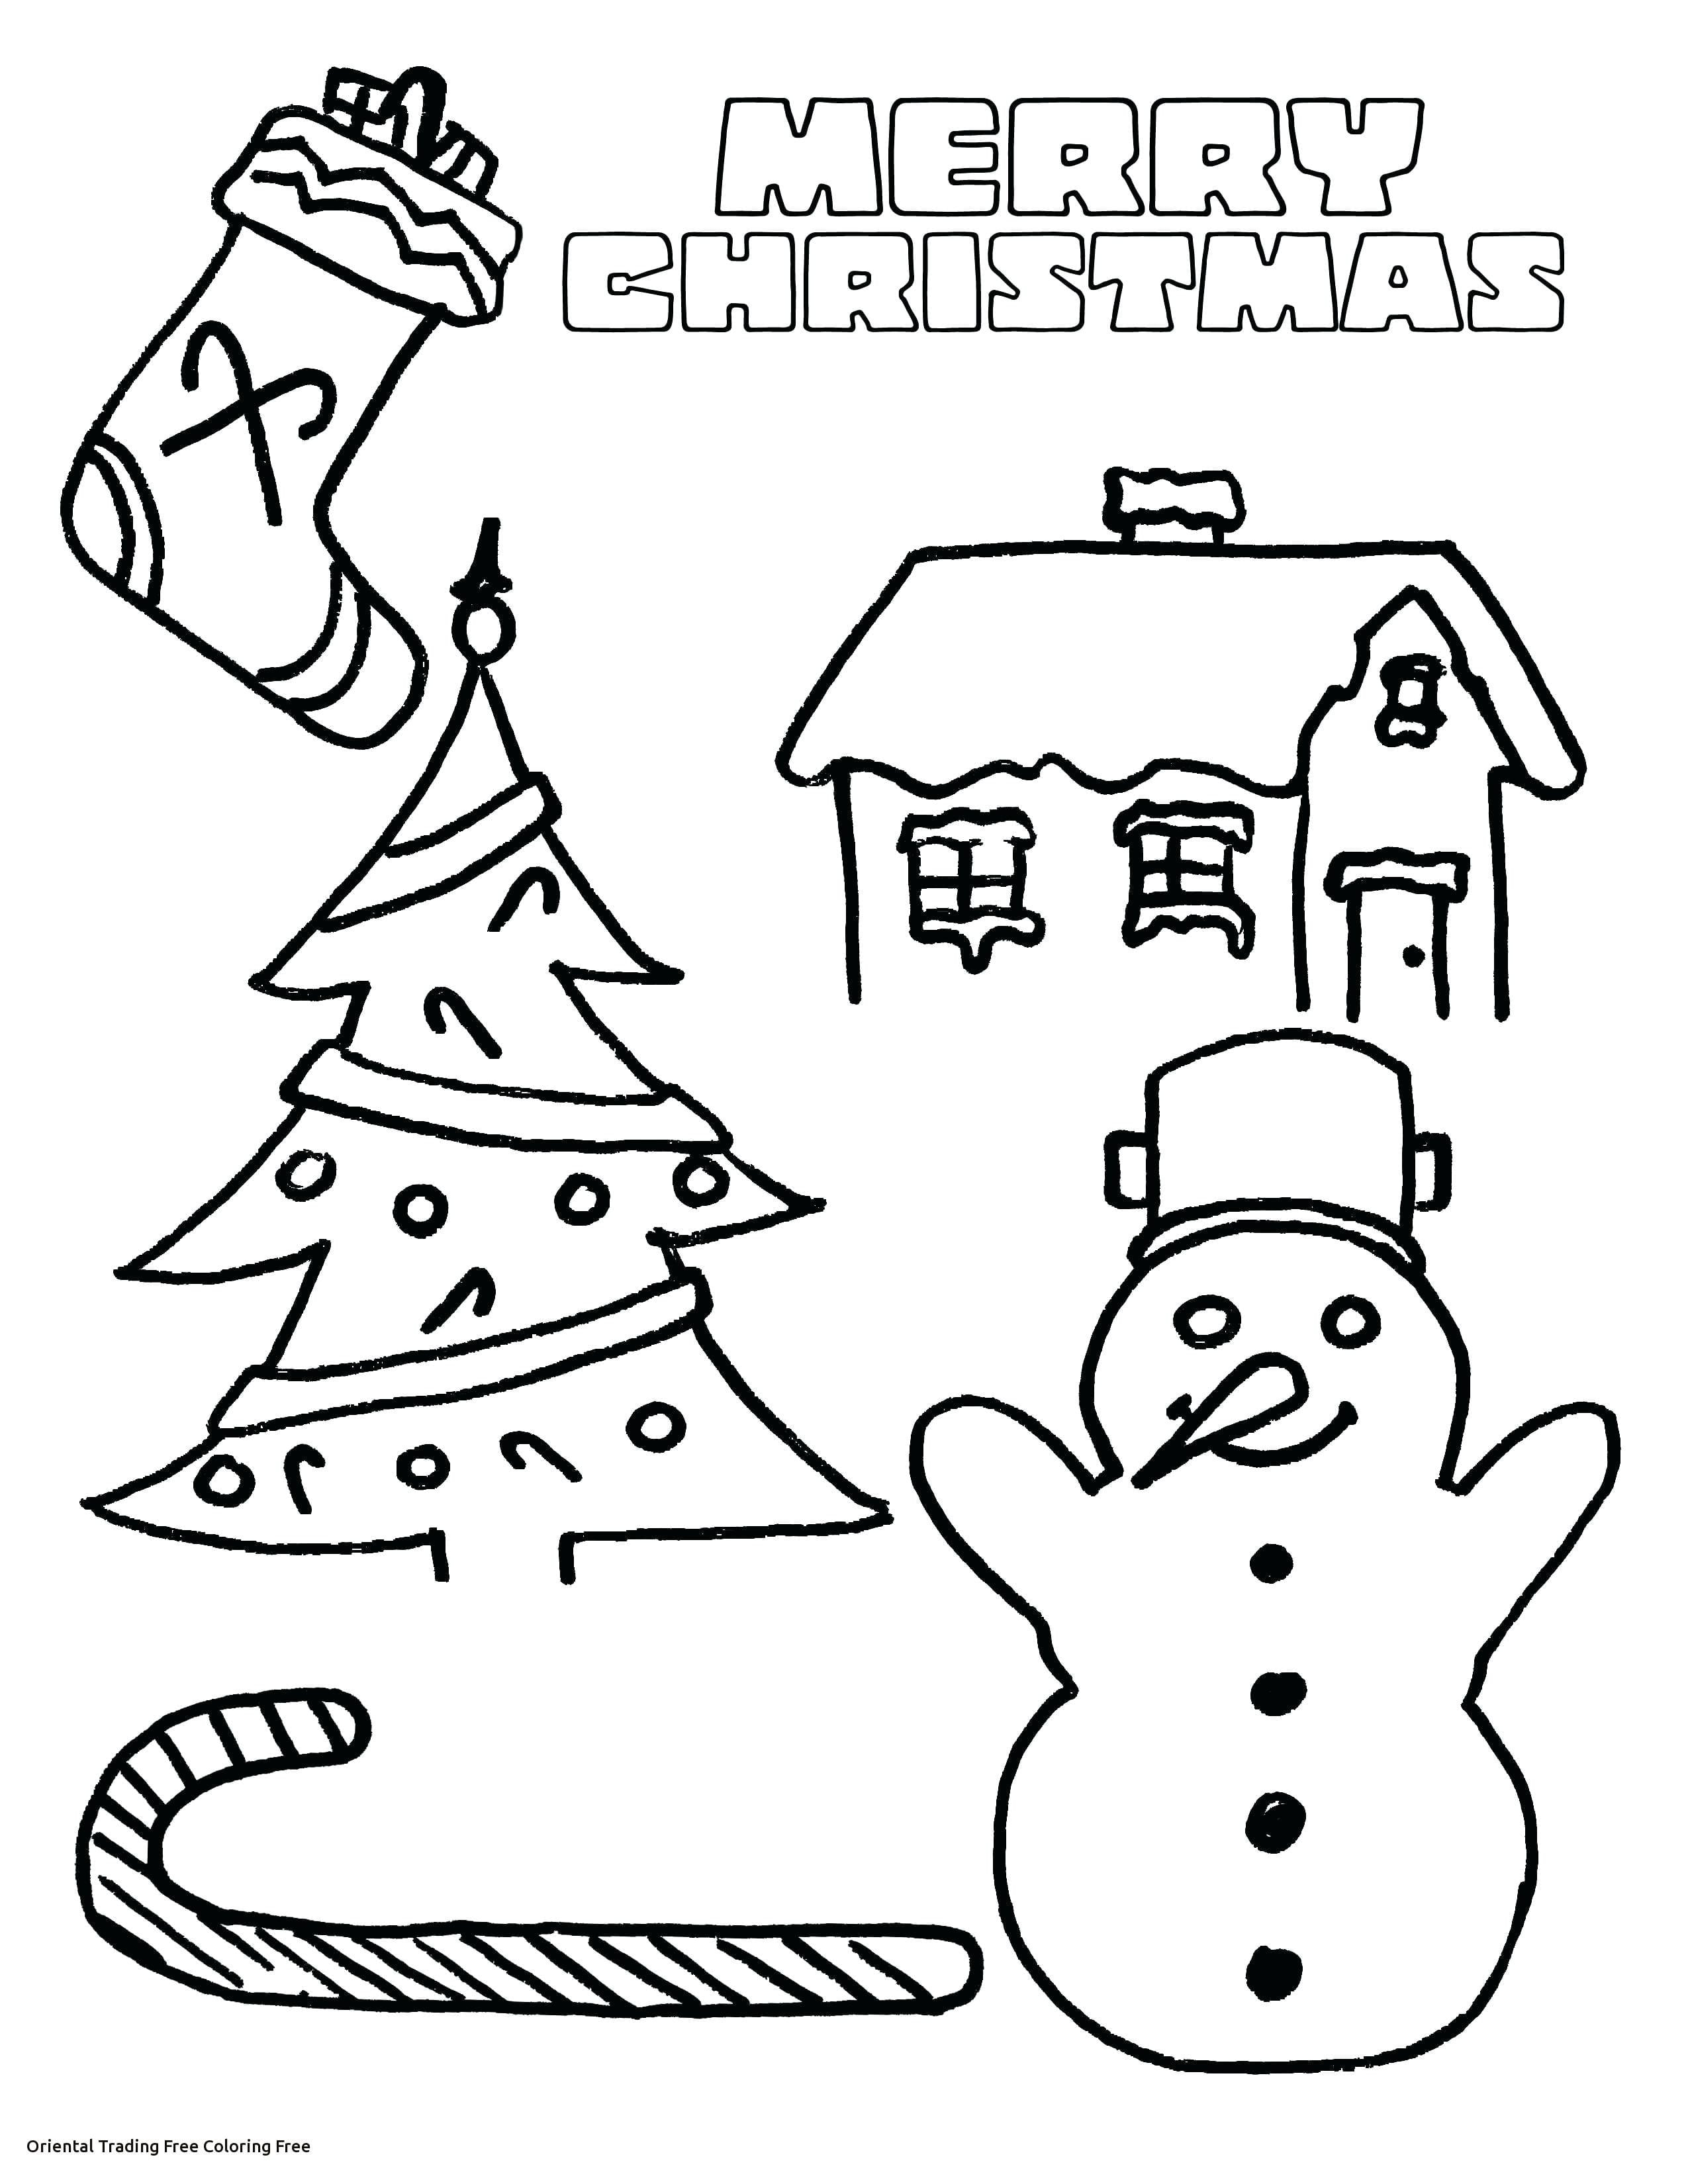 Pioneering Oriental Trading Coloring Pages Fresh Christmas For